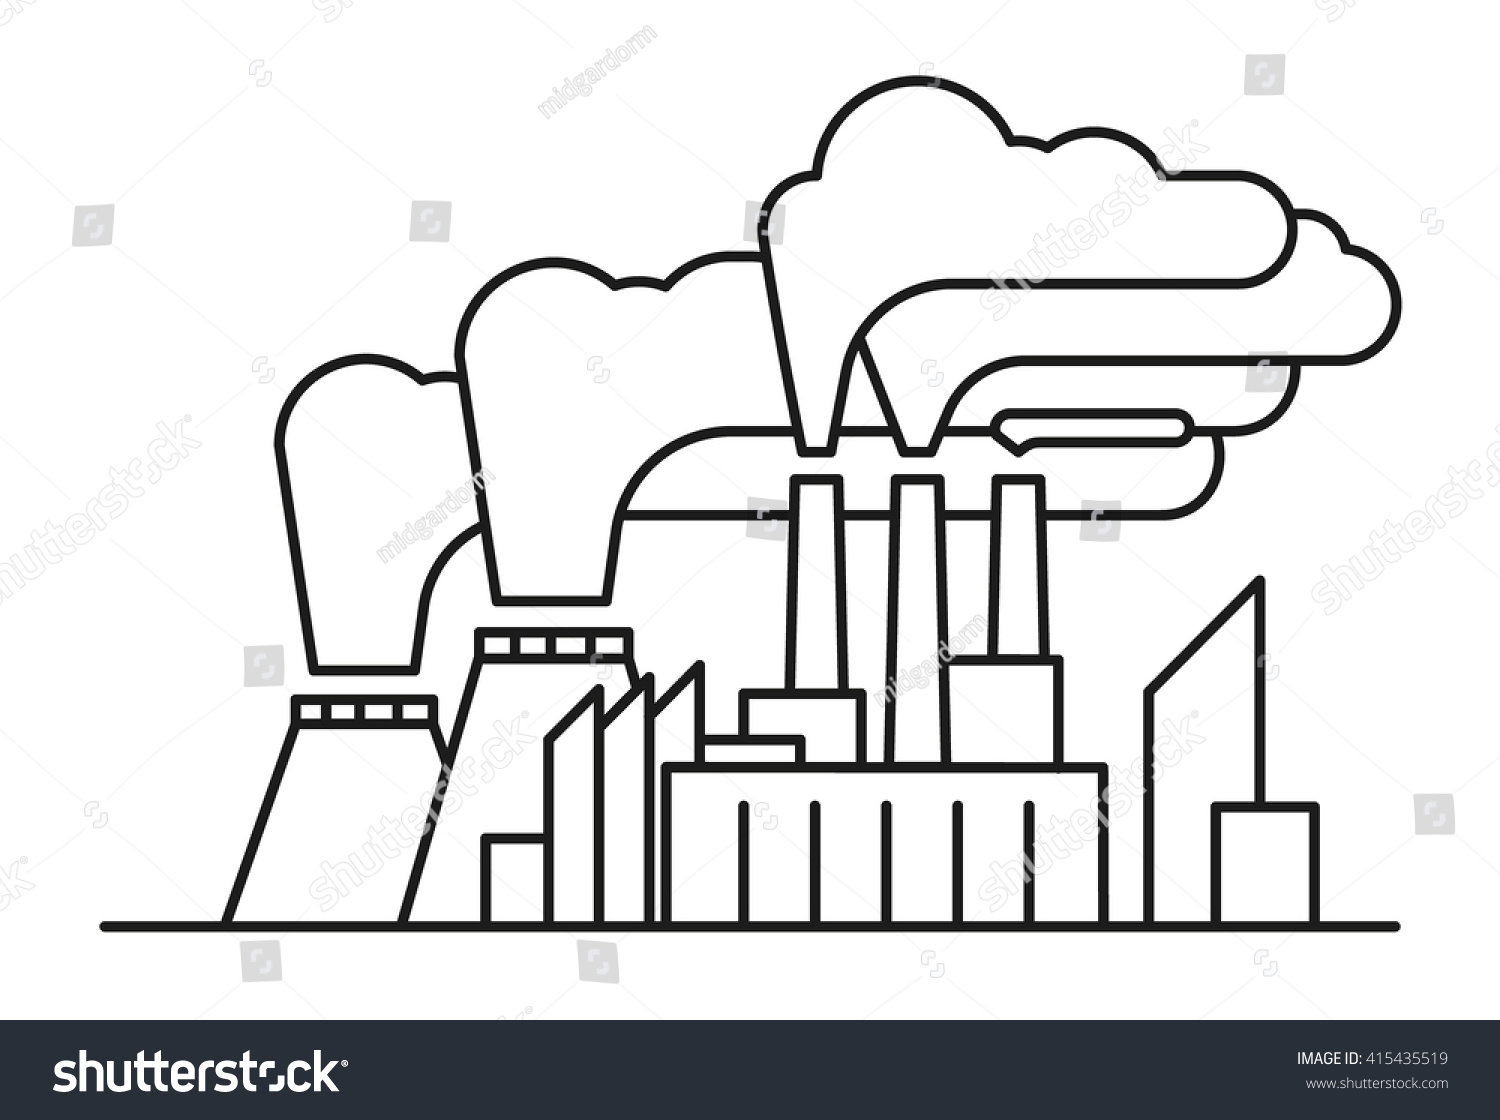 Line Art Illustration Poisonous Air Pollution Stock Vector